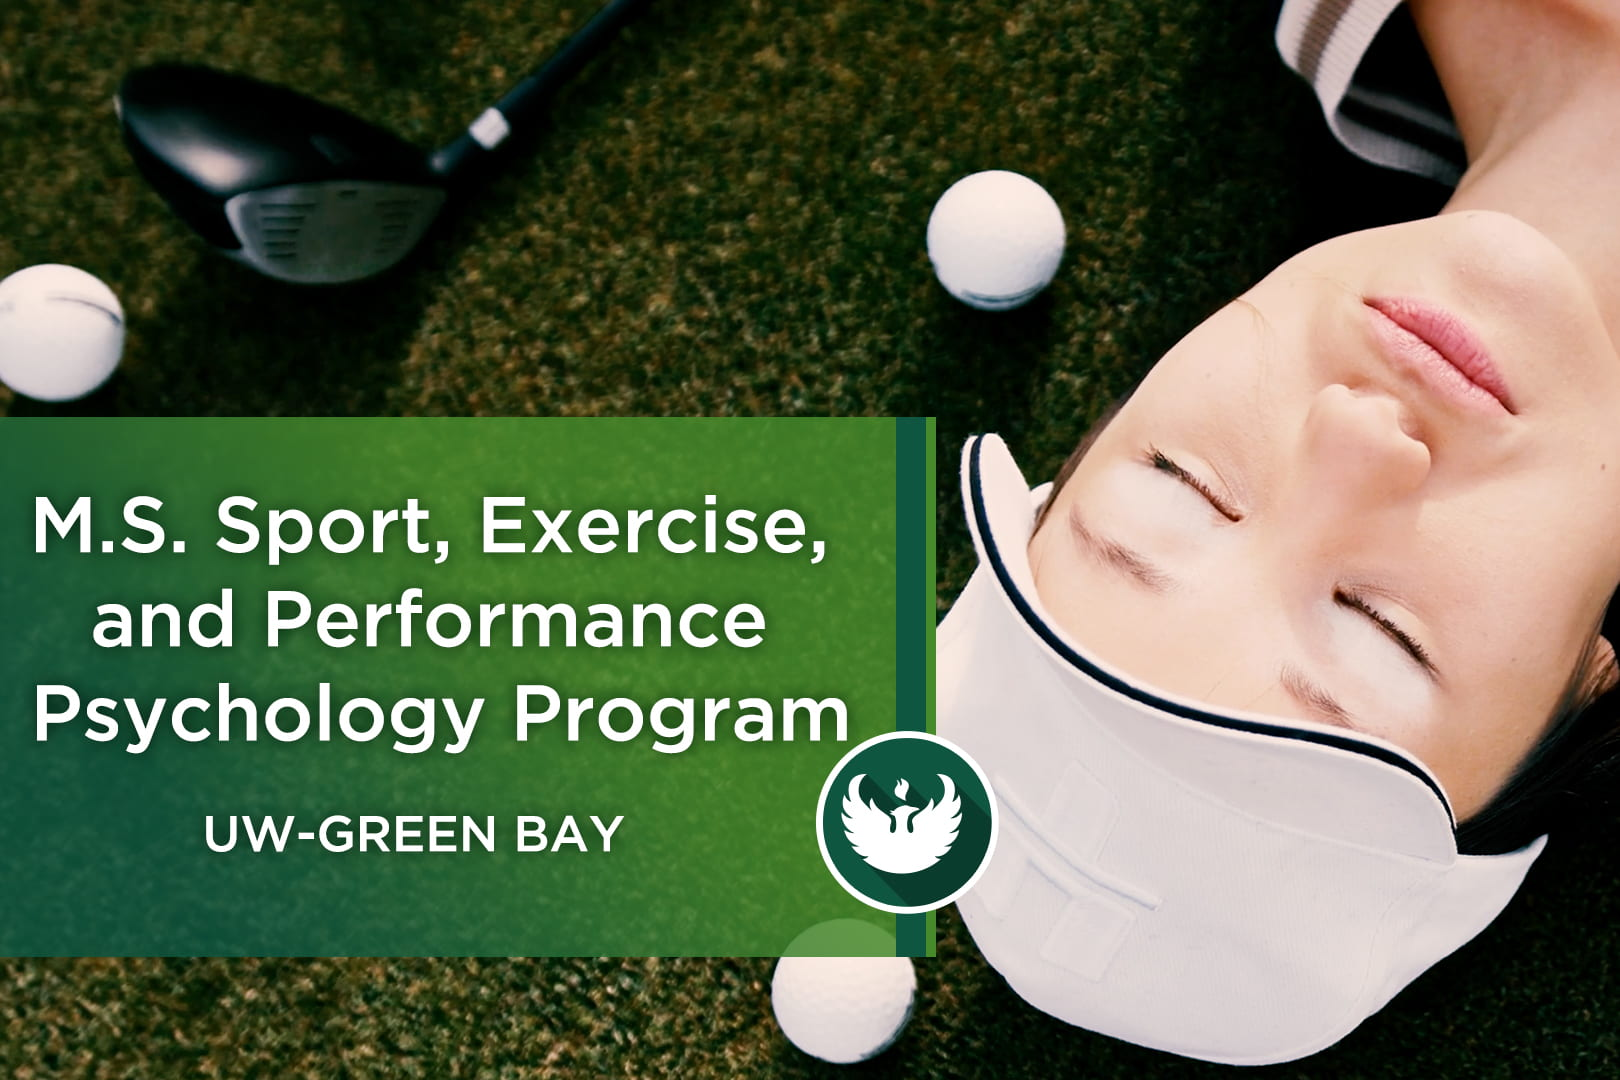 """Photo of the face a female golfer with her eyes closed laying down on the putting greens, surrounded by golf balls and a driver with the text, """"M.S. Sport, Exercise, and Performance Psychology Program UW-Green Bay."""""""